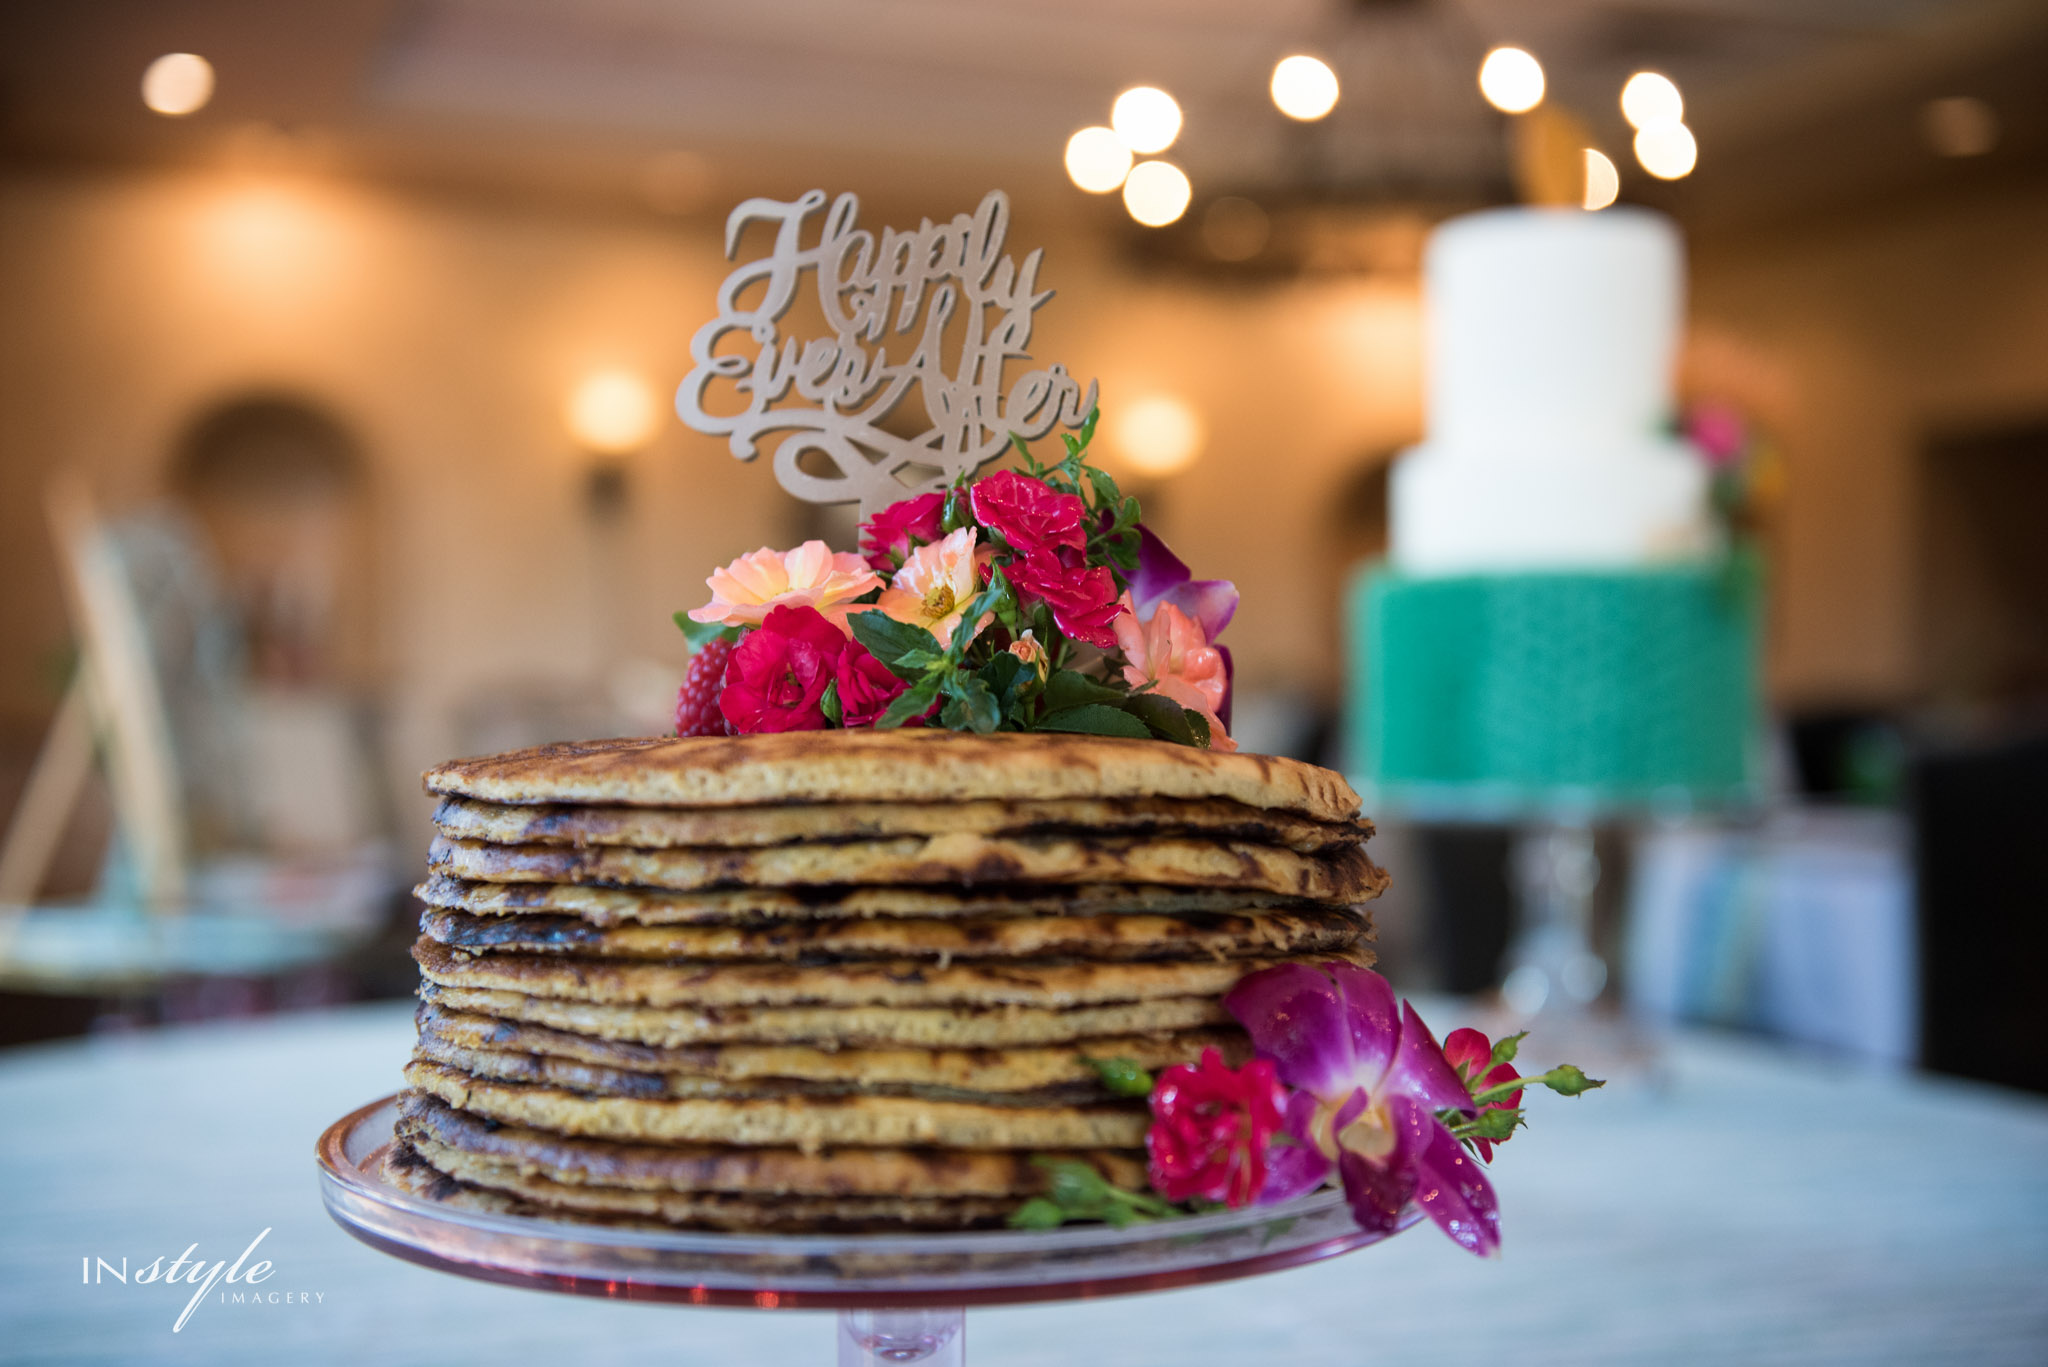 Stack of Pancakes for a Fun At Home Date Idea